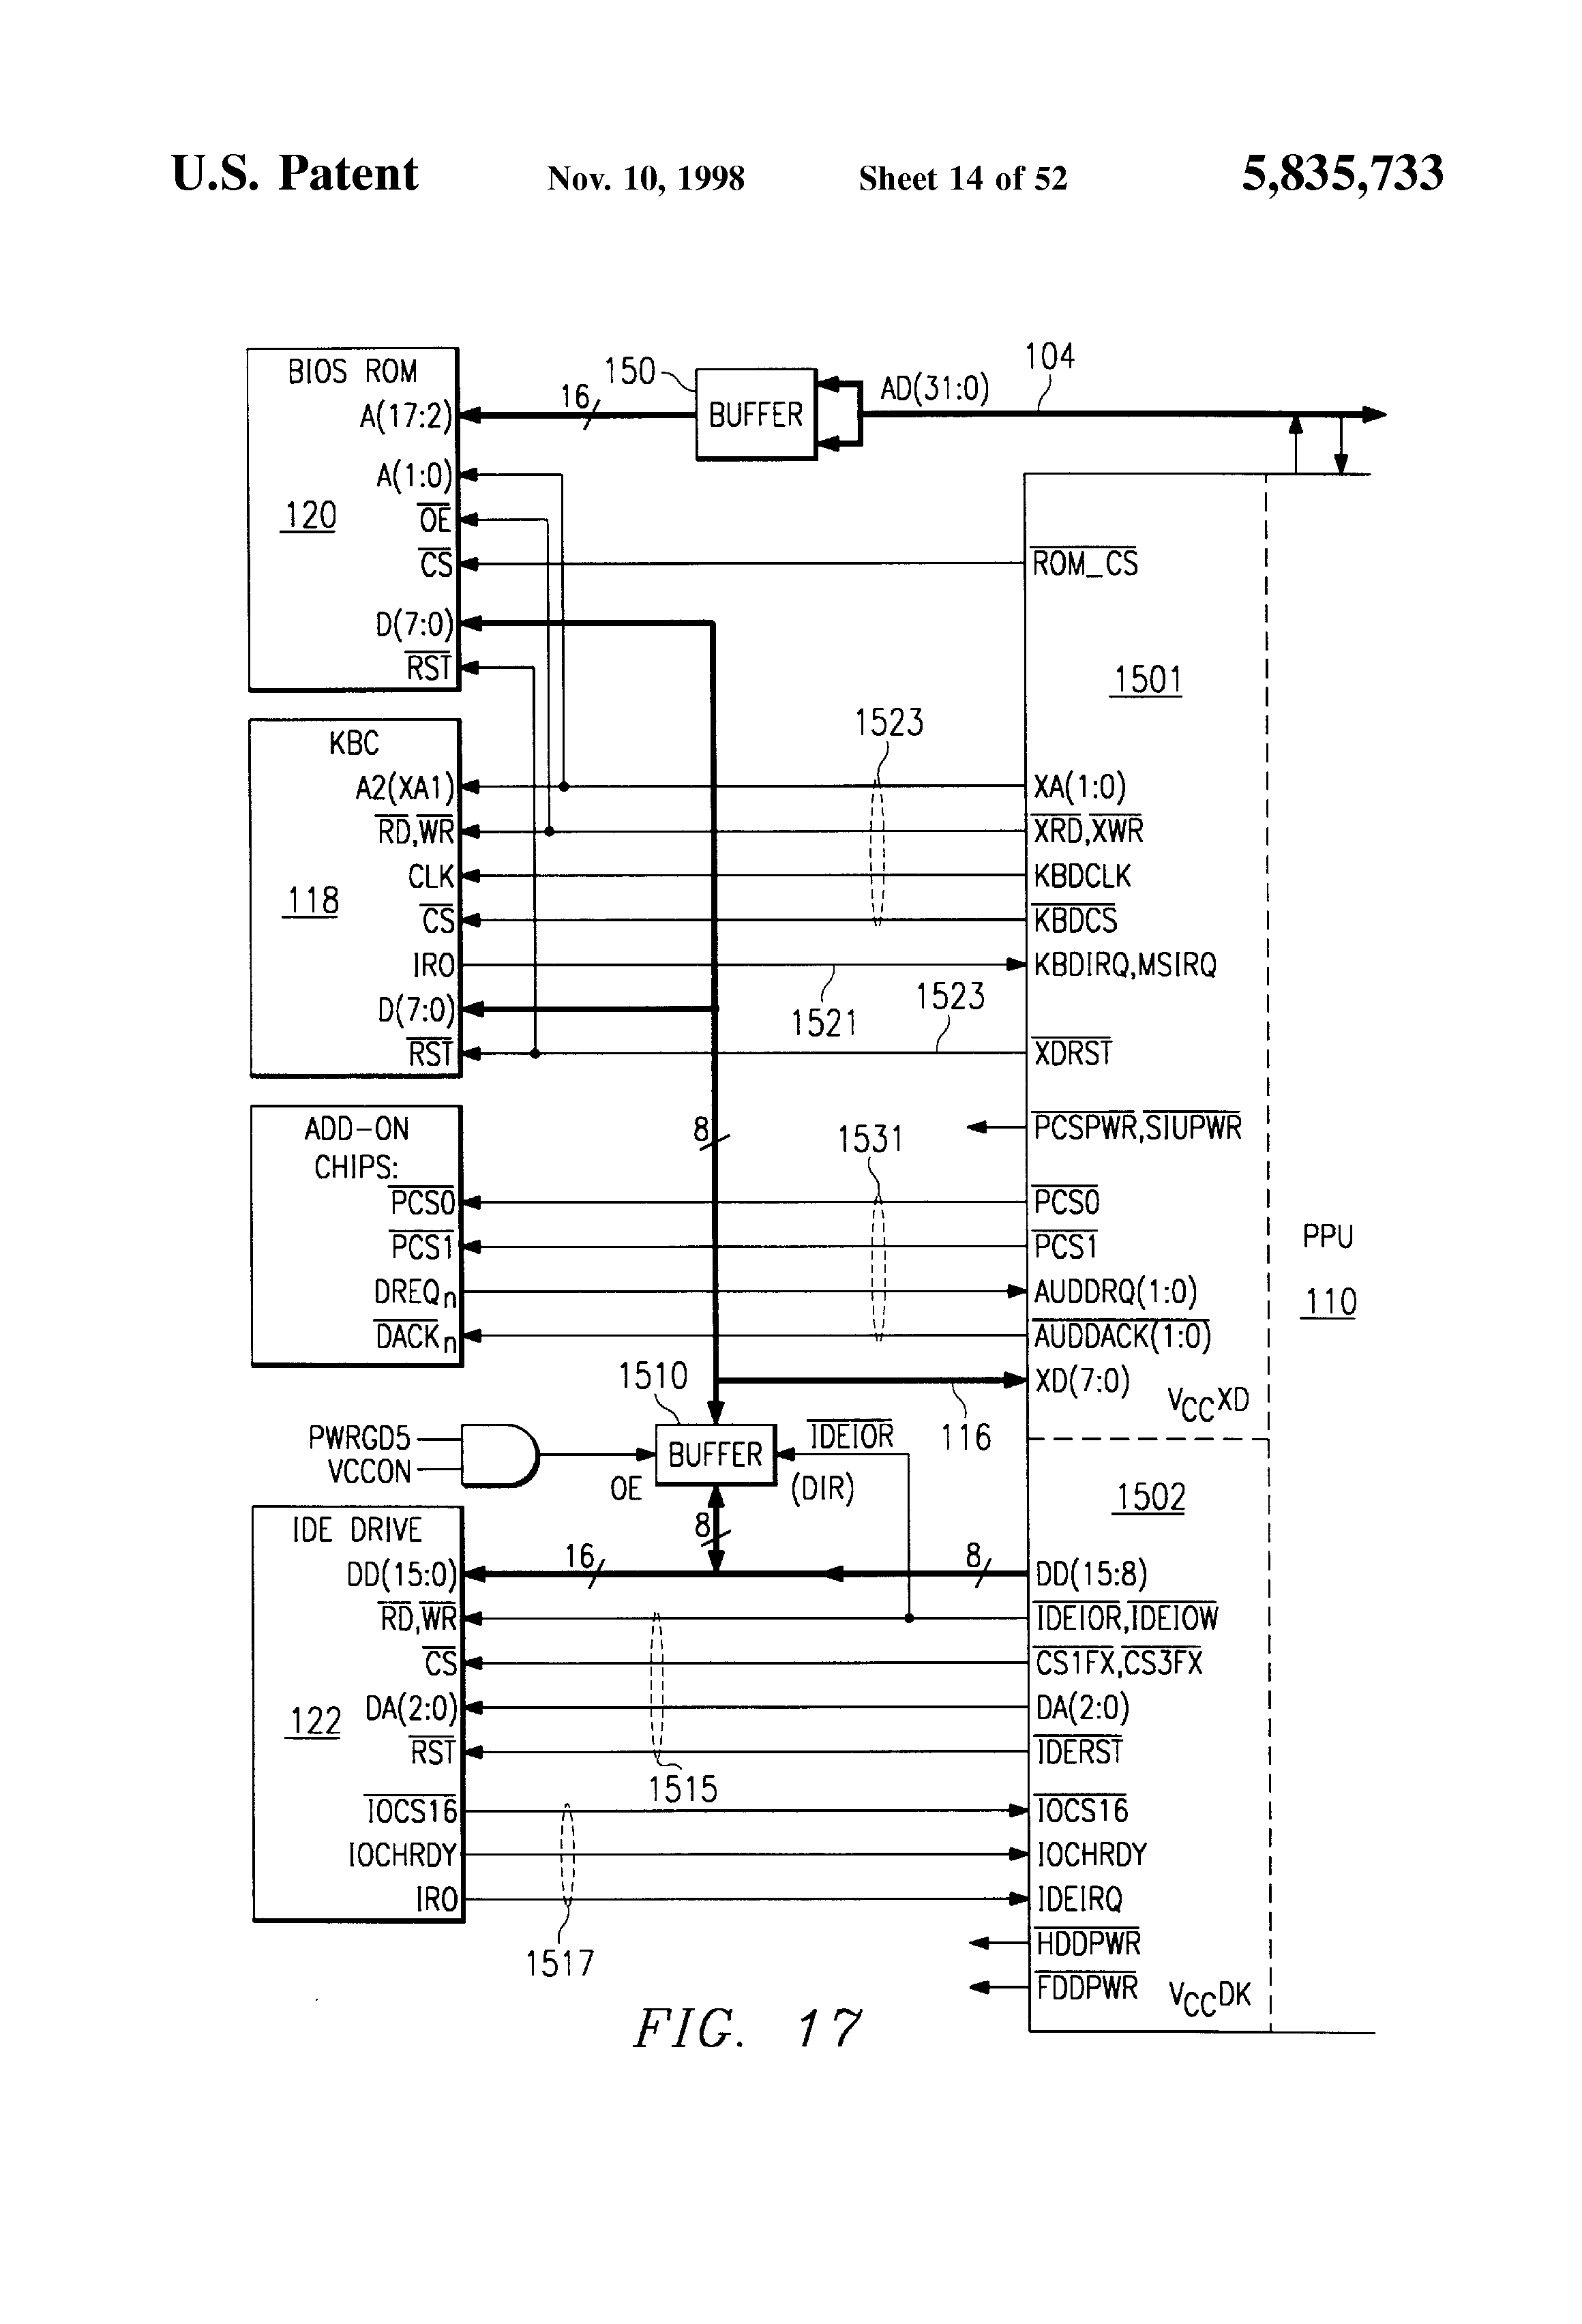 guard dog rb 122 e wiring diagram Collection-Patent Drawing 4-q